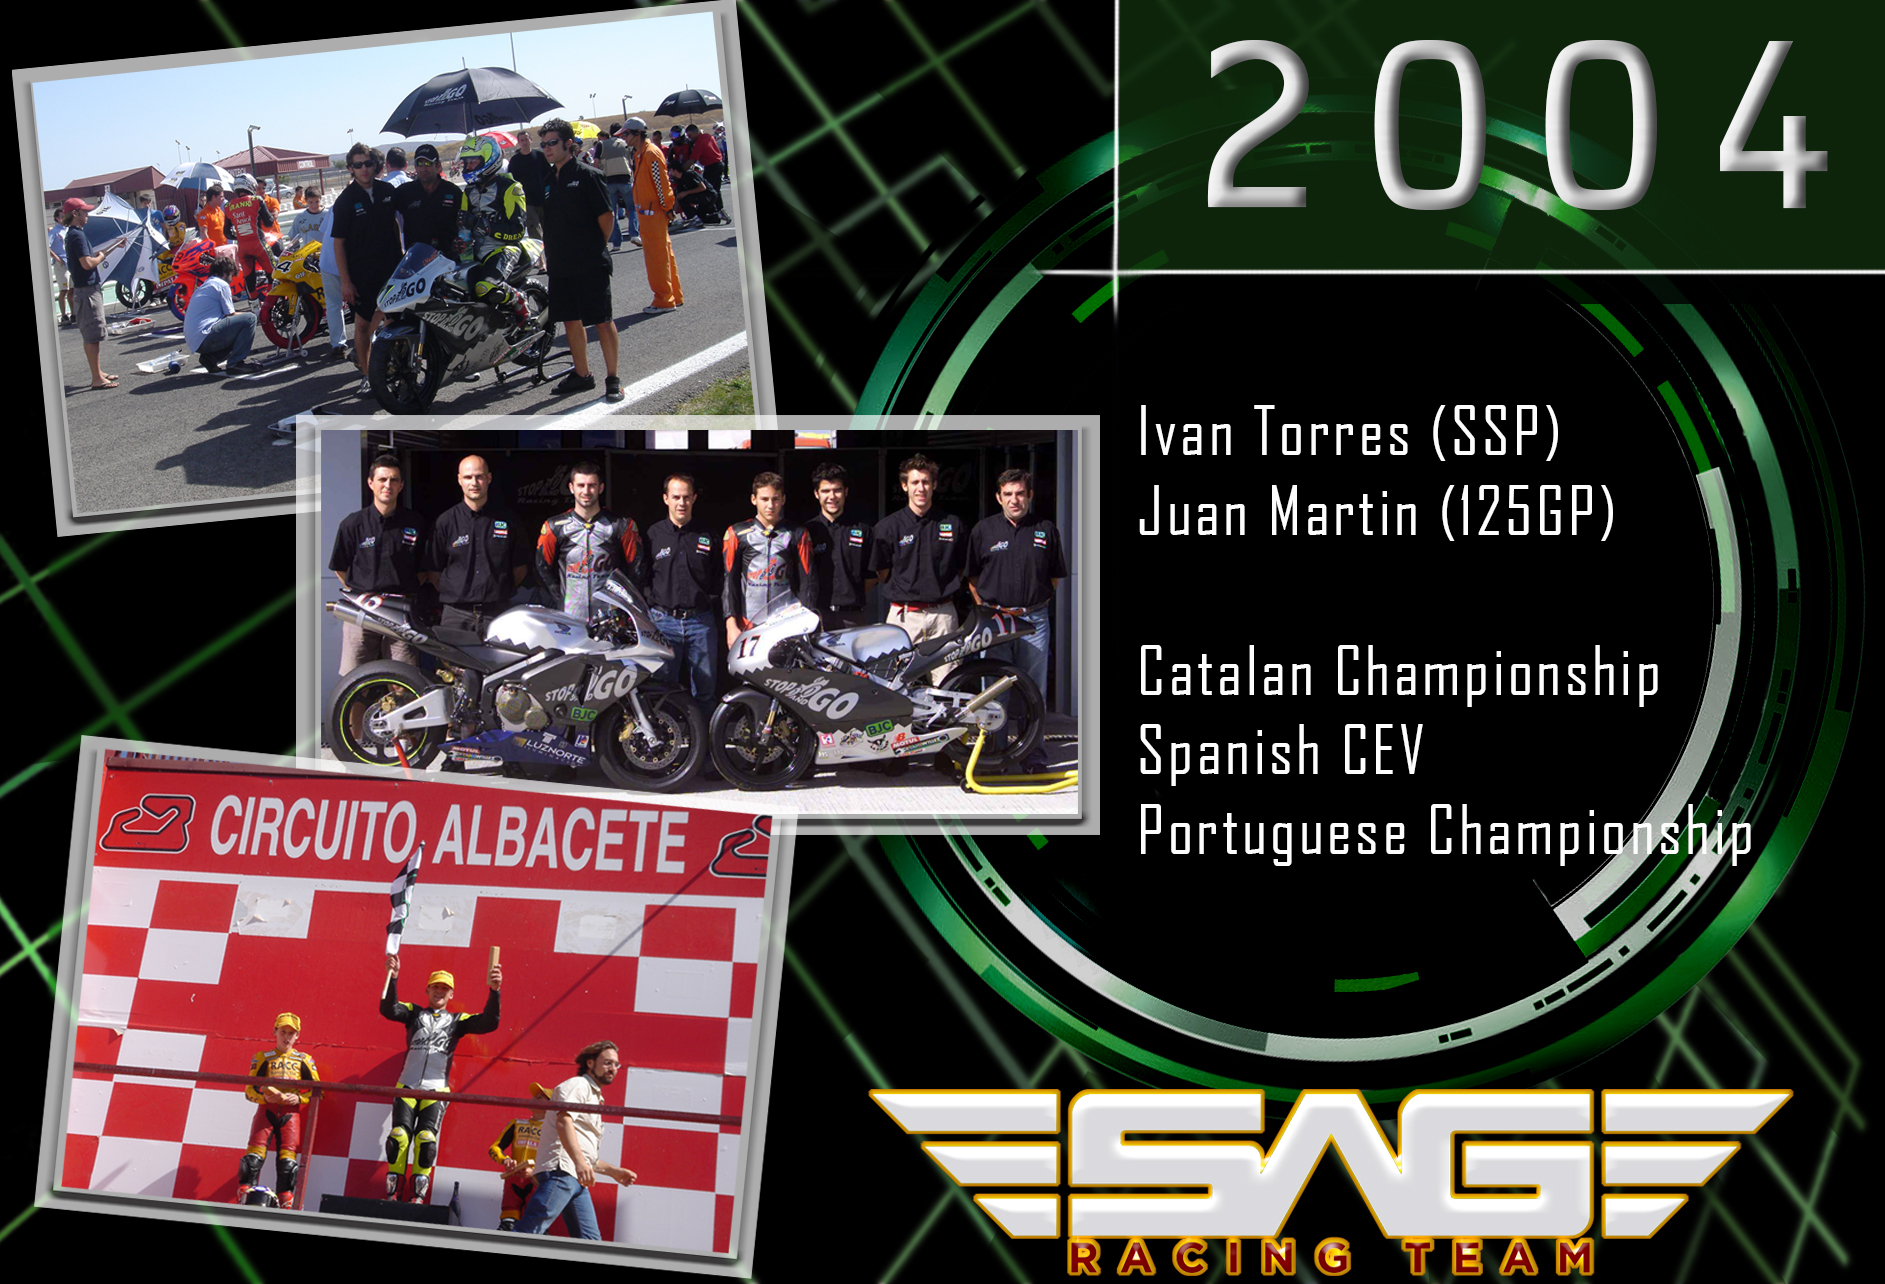 Riders in CEV and Catalan Championship